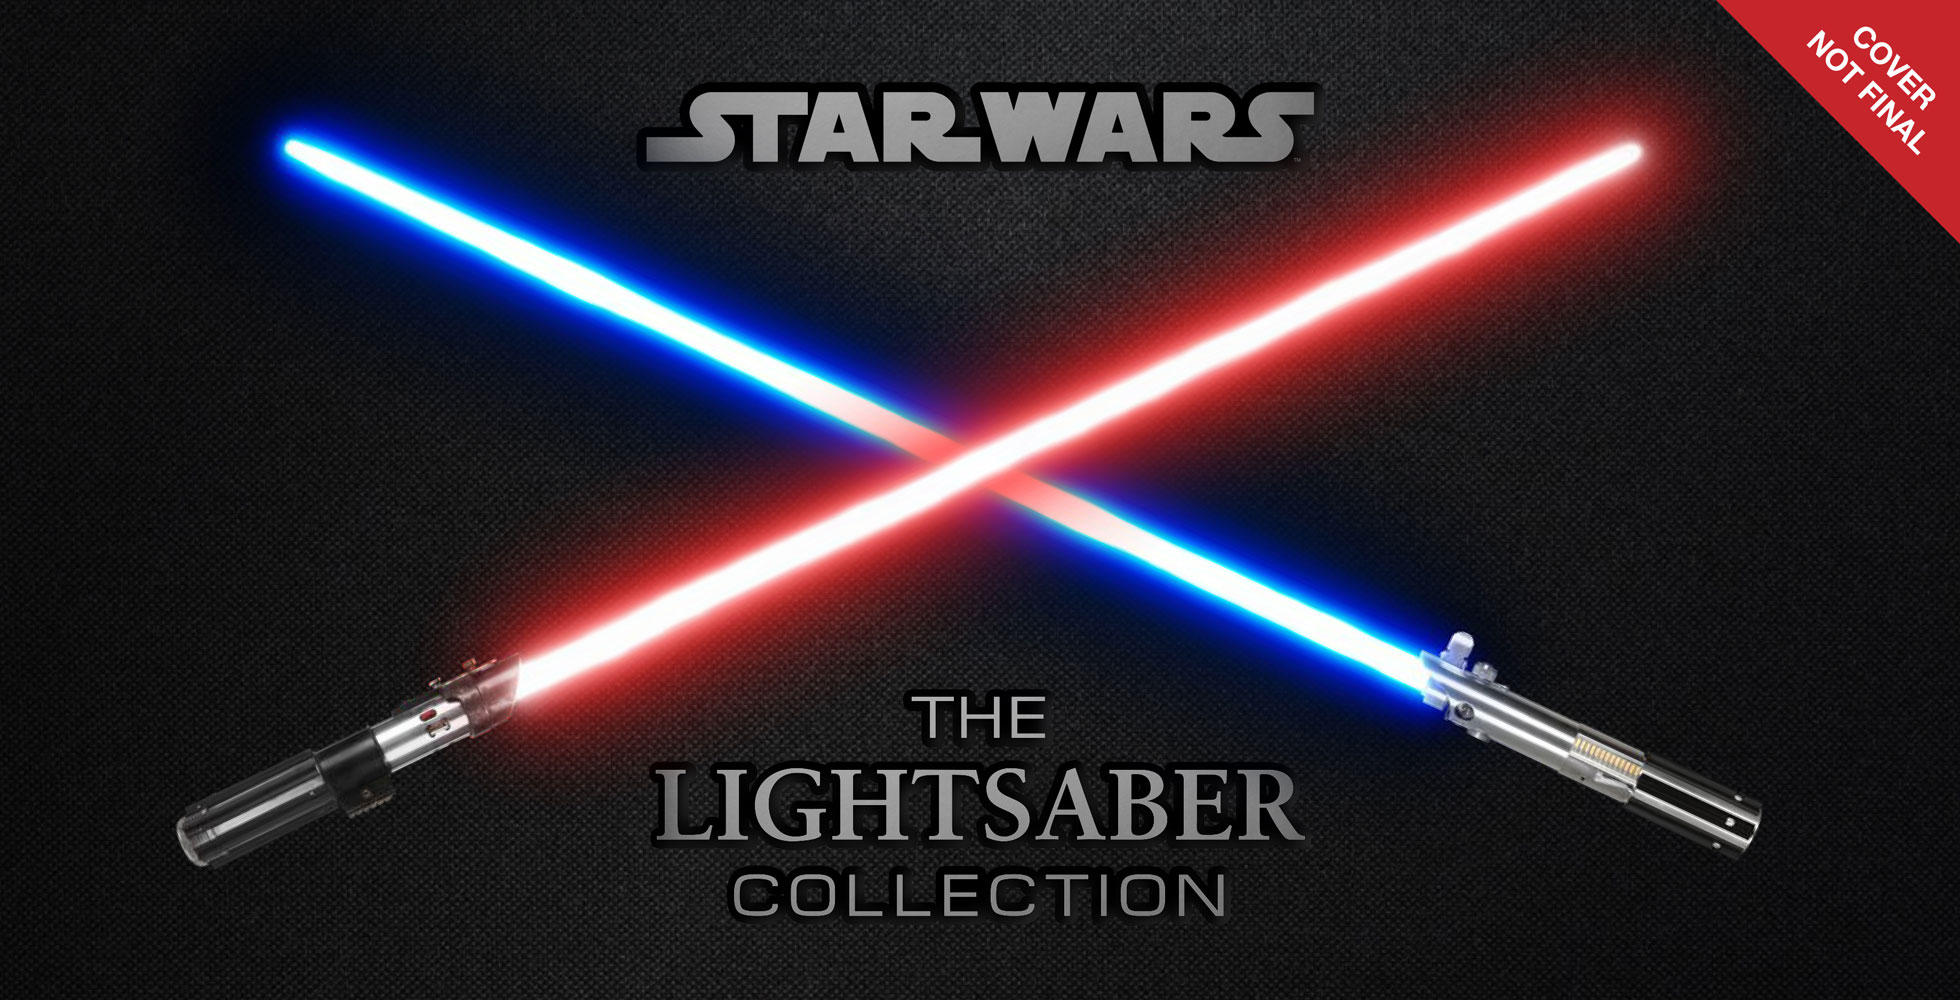 Star Wars The Lightsaber Collection Sideshow Collectibles